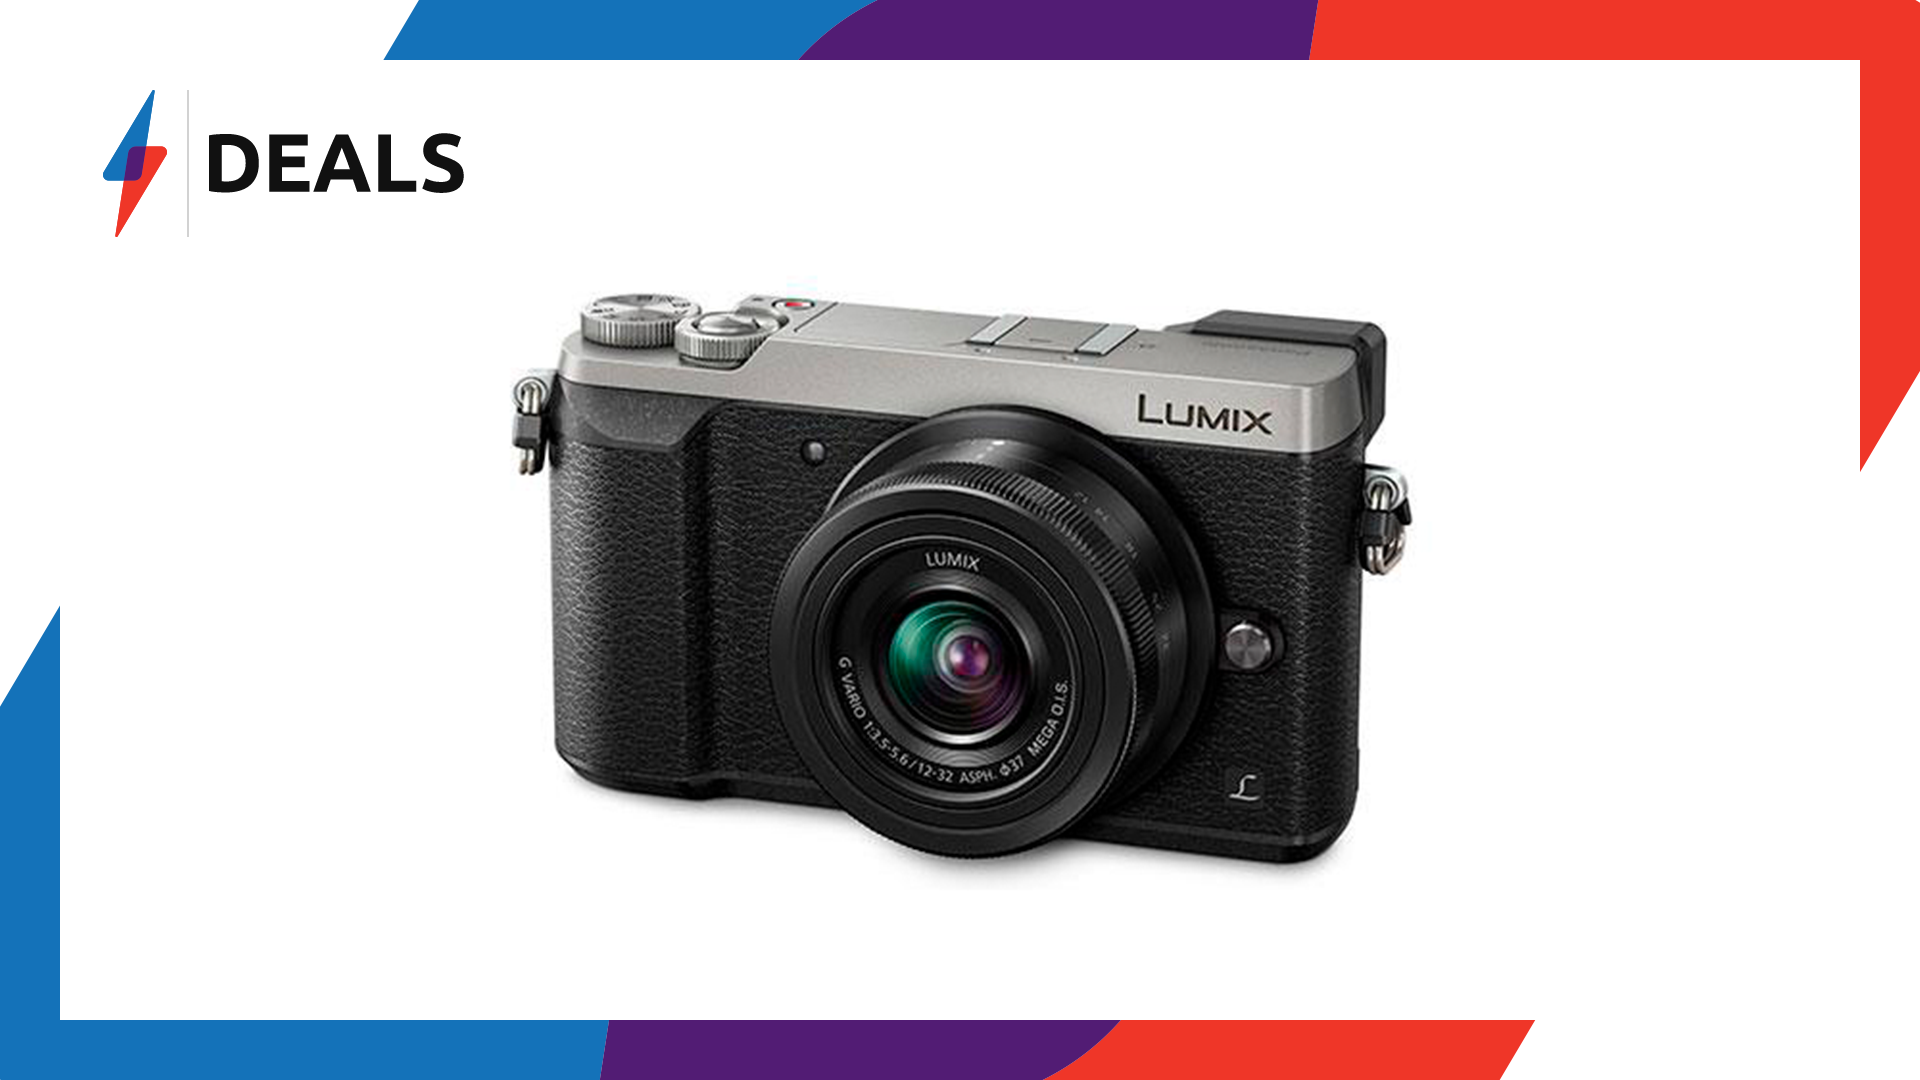 Price Crash: The Panasonic Lumix GX80 is now available for under £300